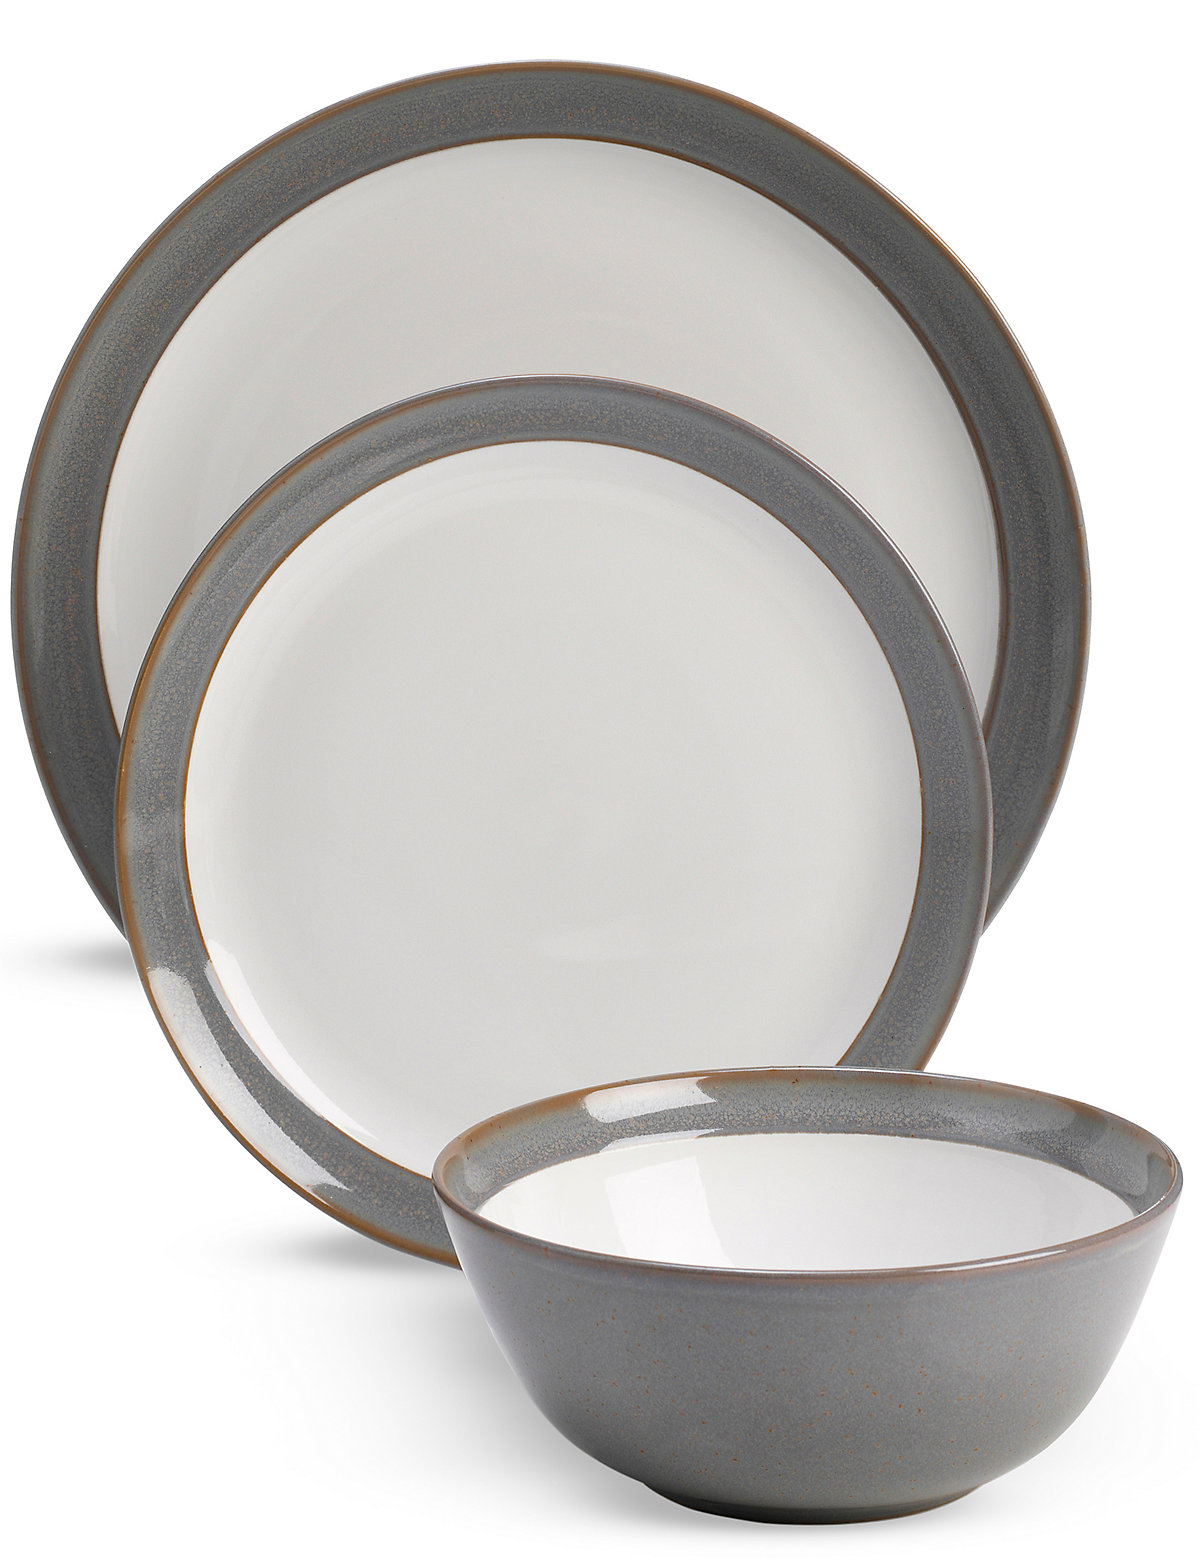 Image of 12 Piece Richmond Dinner Set